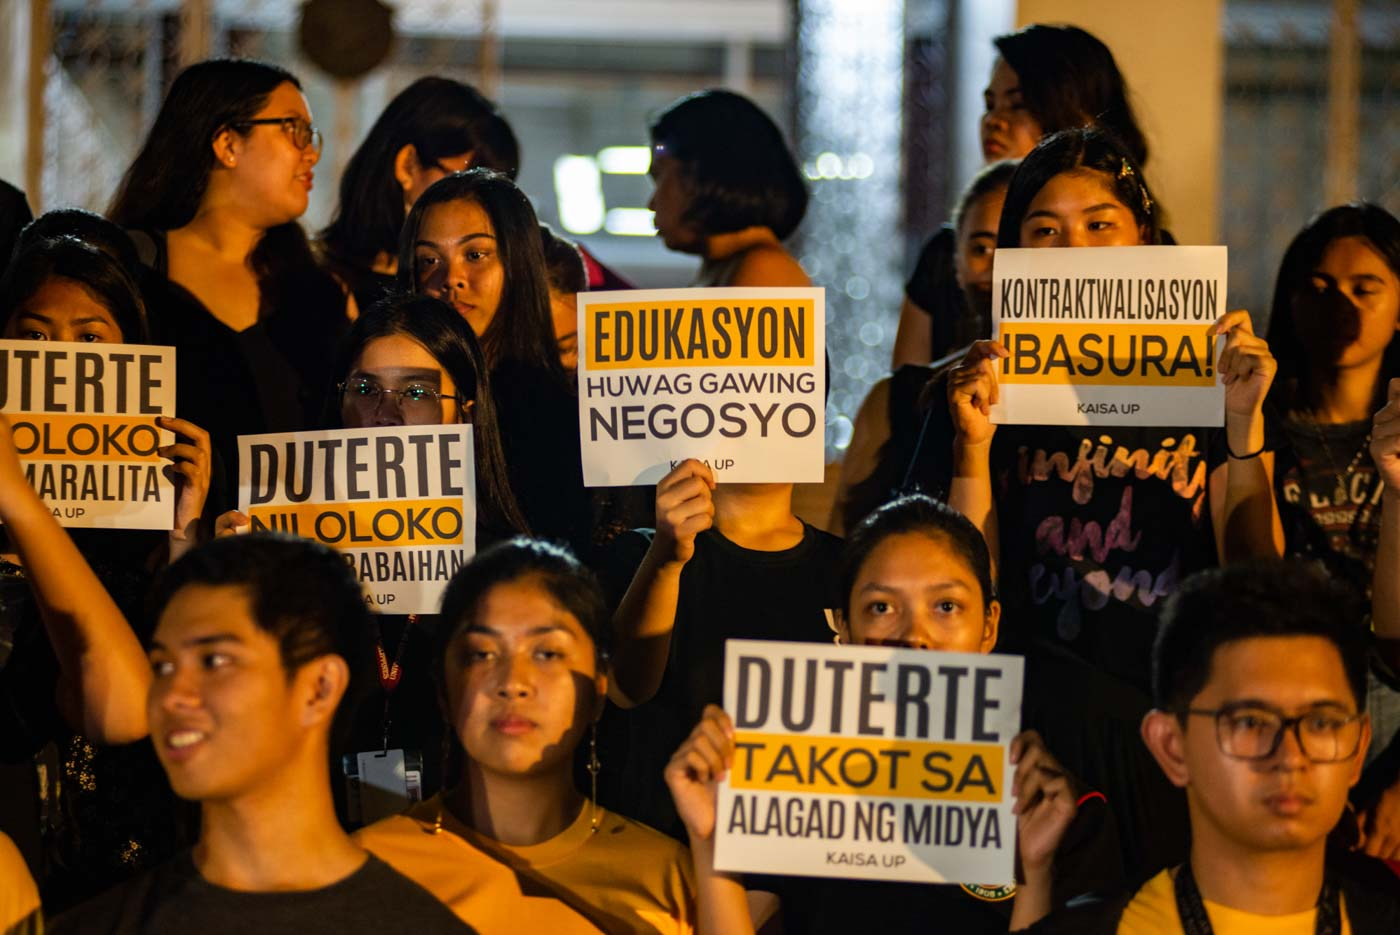 PROTEST. KAISA UP stages a torch rally against the recent arrest of Maria Ressa, and to call out the false promises of President Rodrigo Duterte to the people at the Palma Hall on April 2. All photos by Maria Tan/Rappler